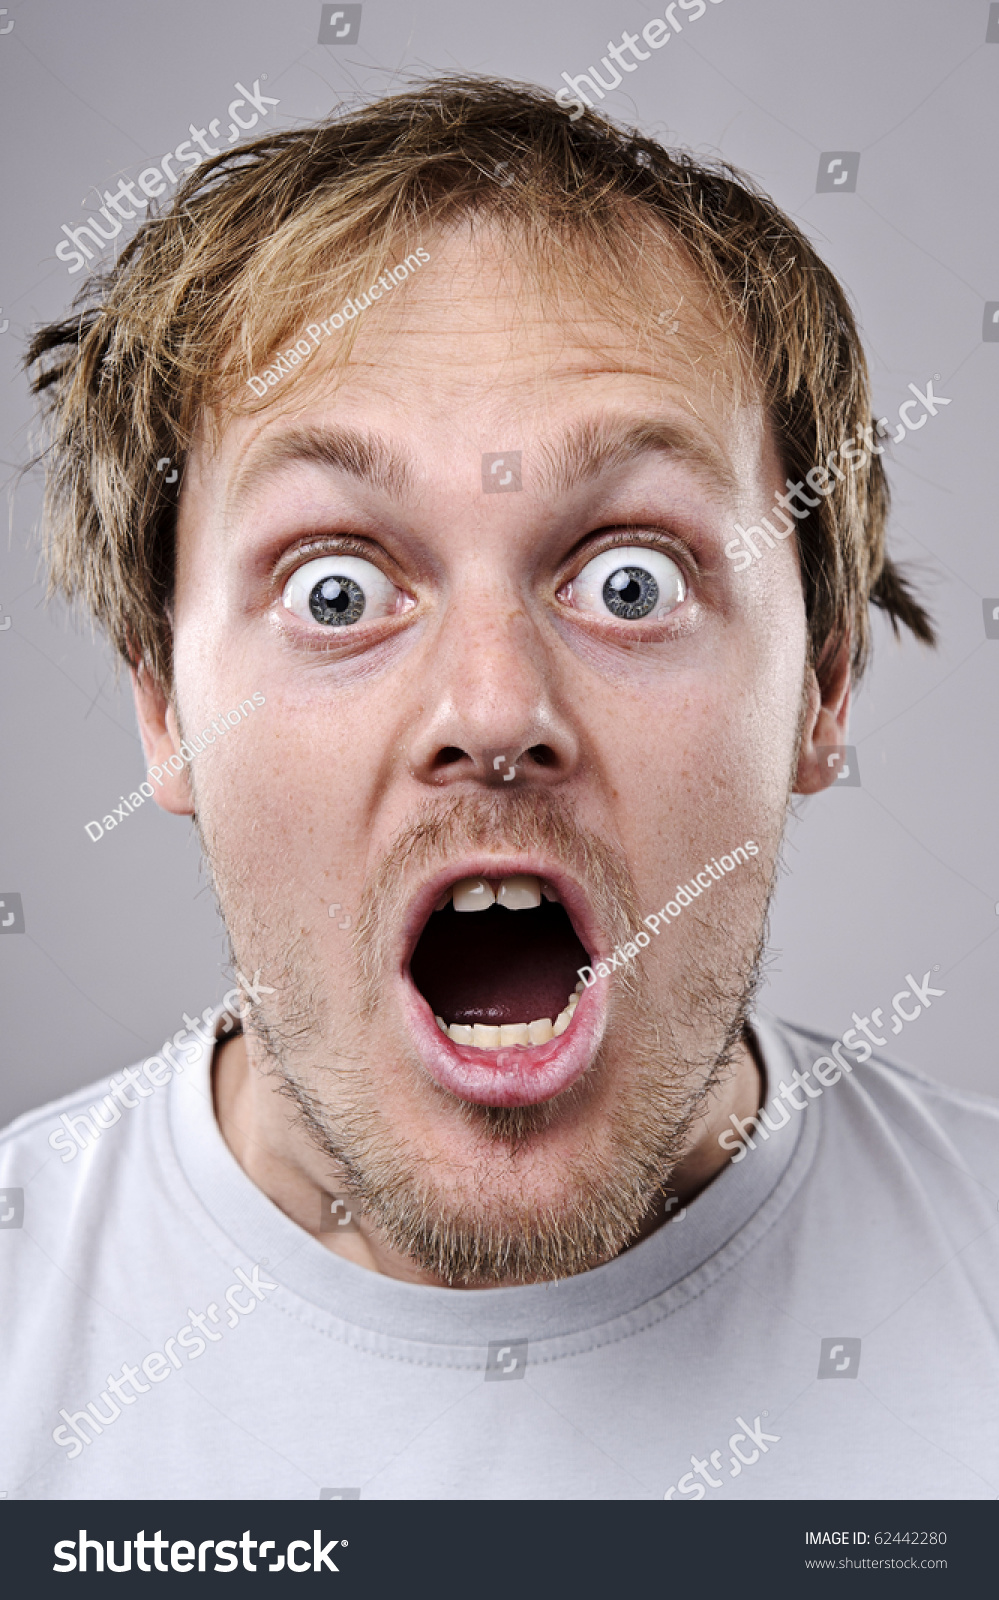 A real funny face captured in high detail - stock photo - stock-photo-a-real-funny-face-captured-in-high-detail-62442280